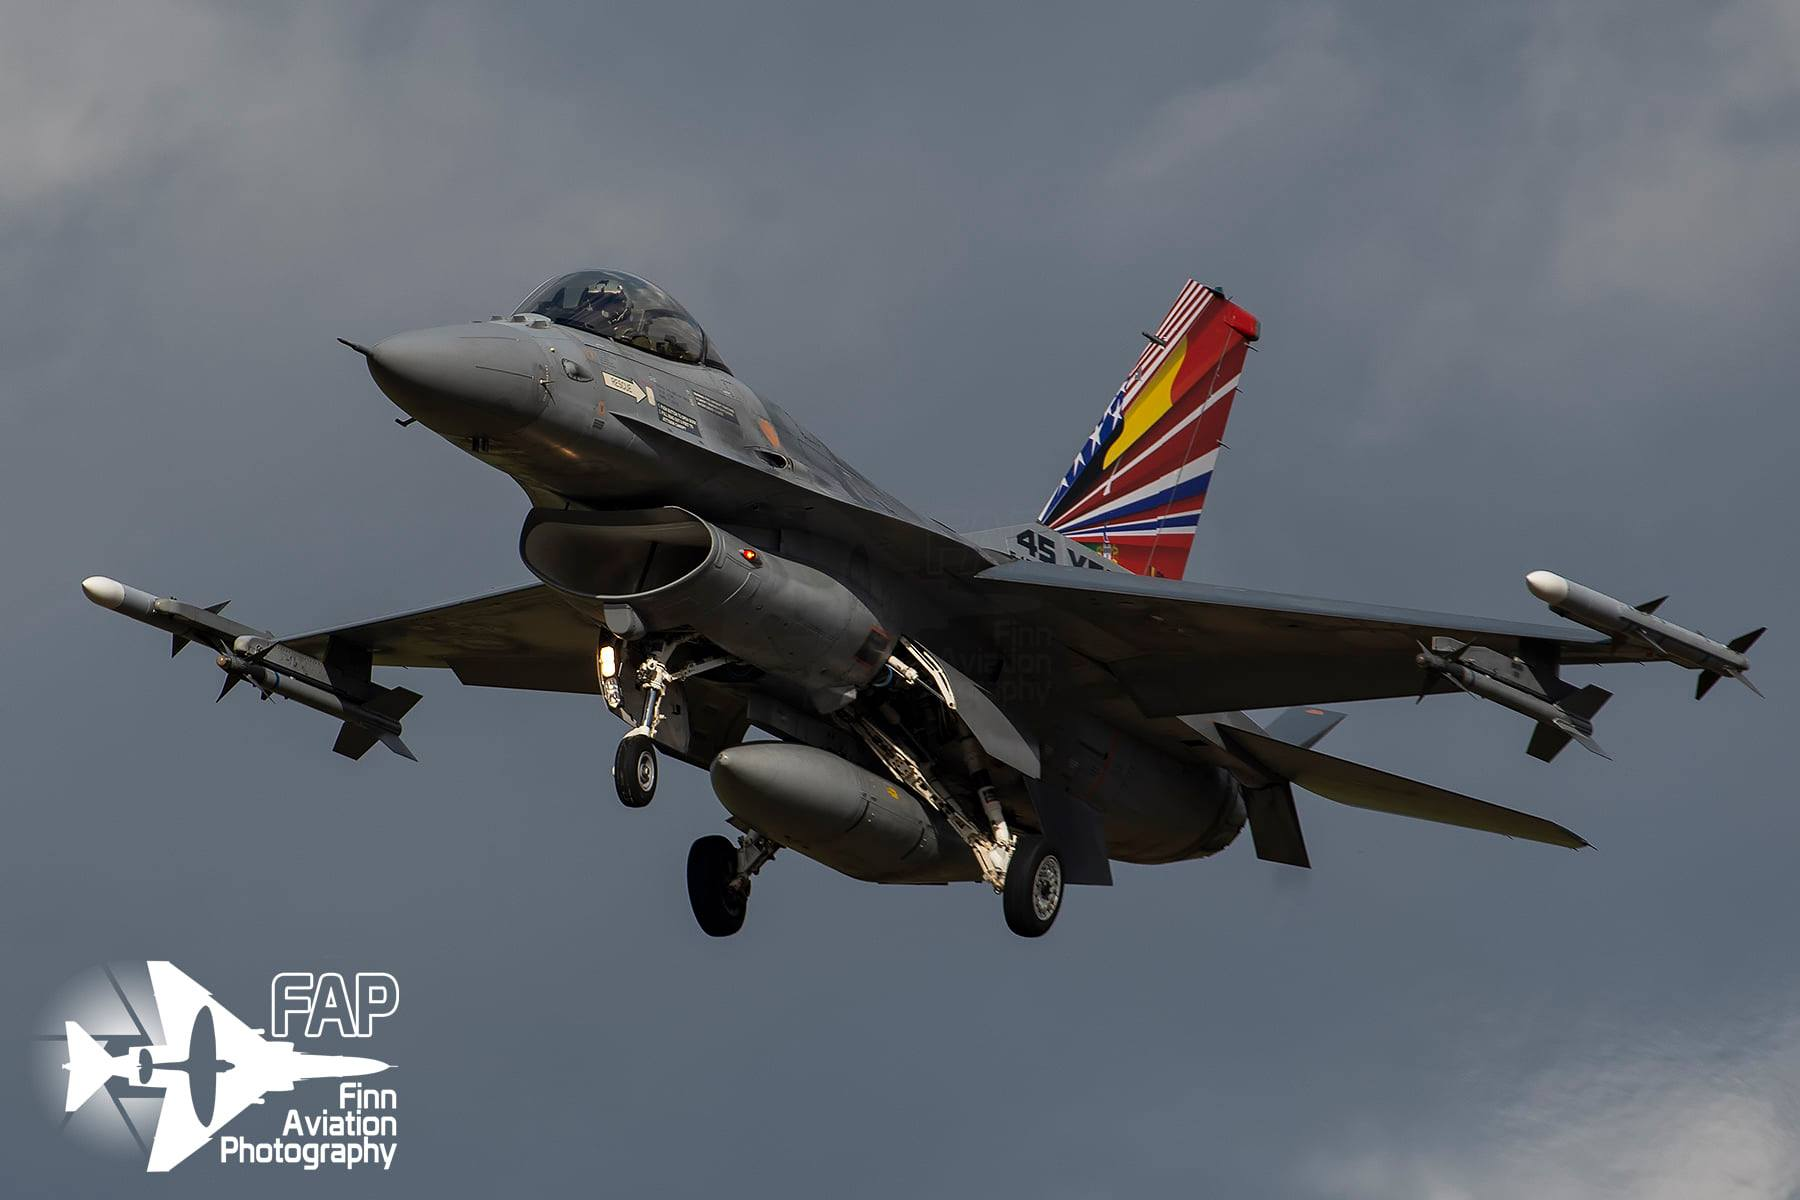 Belgian Air Force unveils F-16 with cool tail flash celebrating 45 years of Multi National Fighter Program